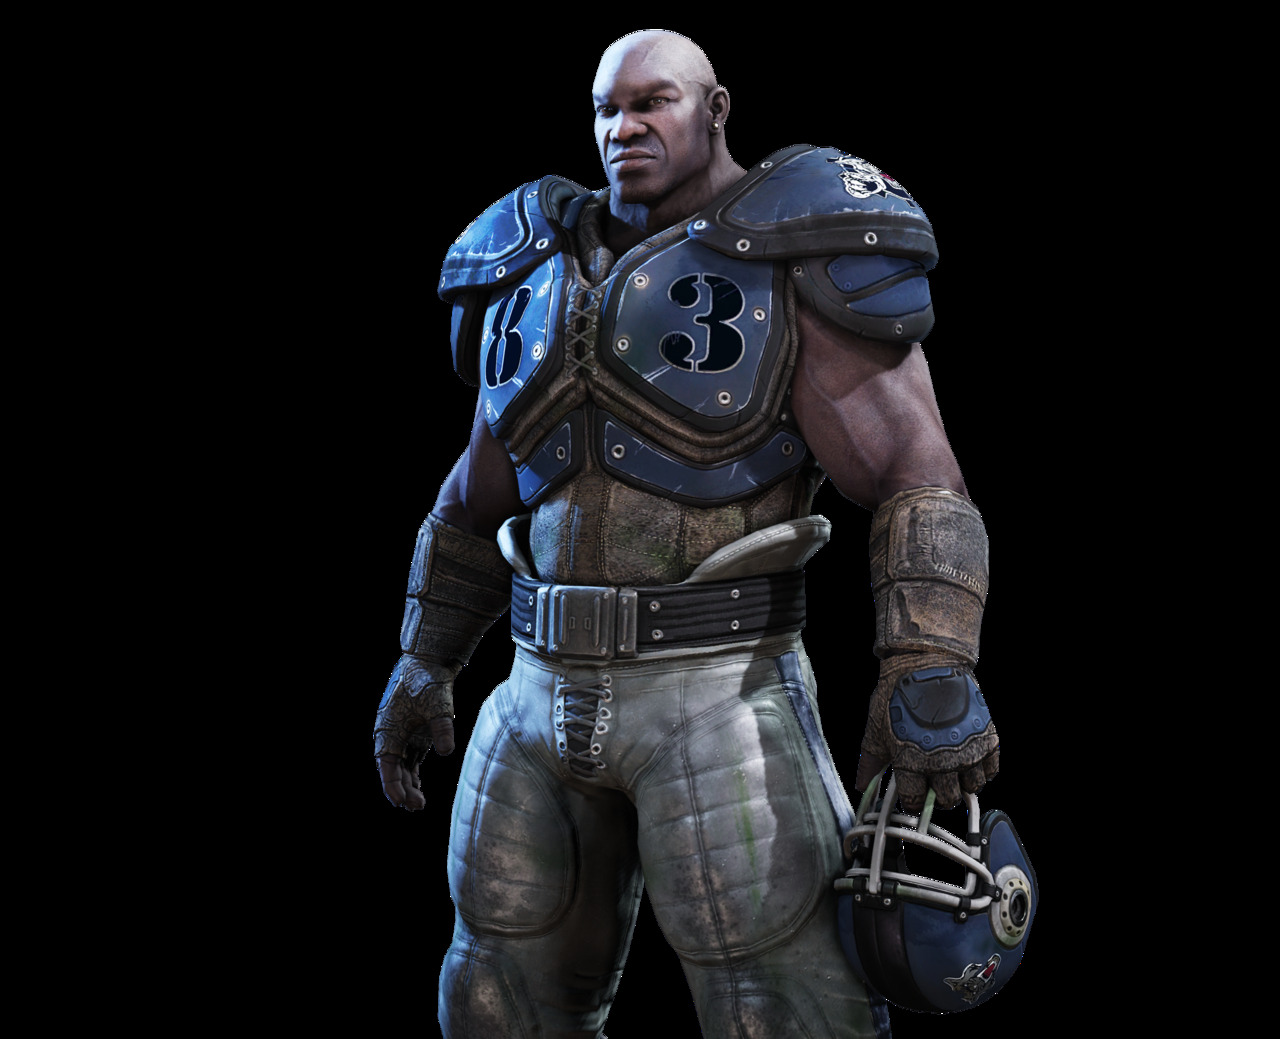 Artworky a screenshoty z Gears of War 3 44674